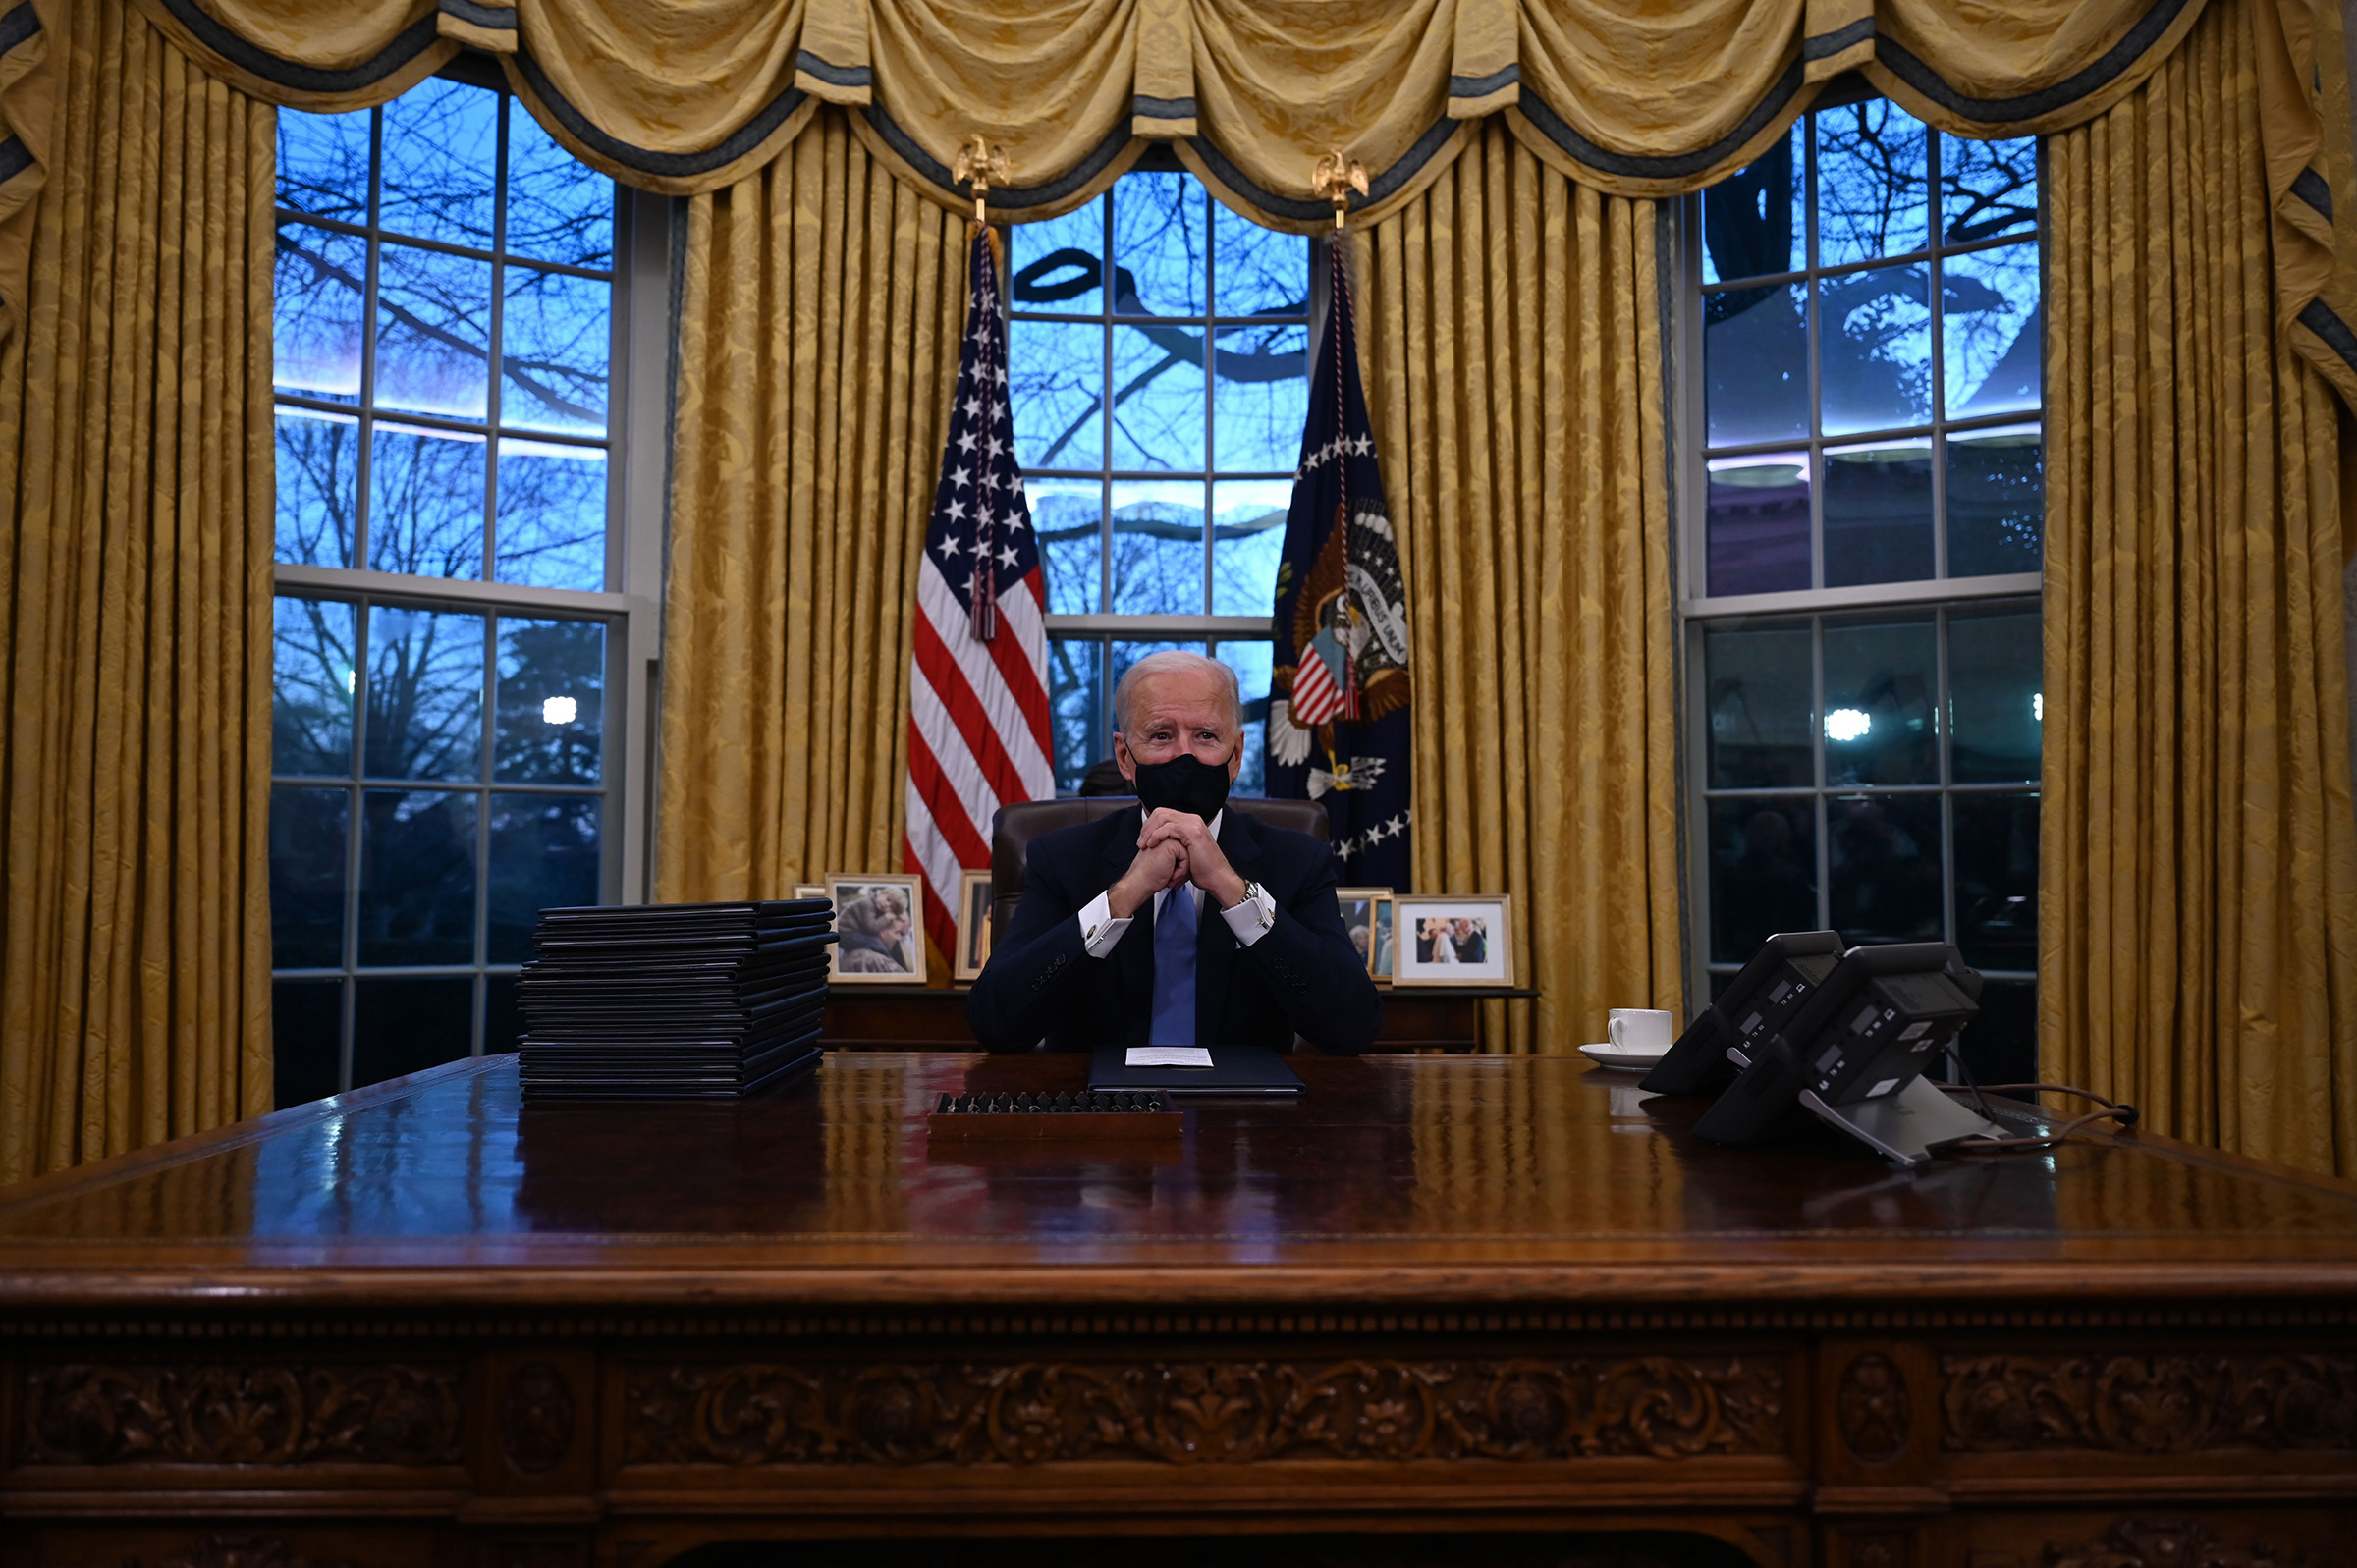 President Joe Biden sits in the Oval Office at the White House, after being sworn in.